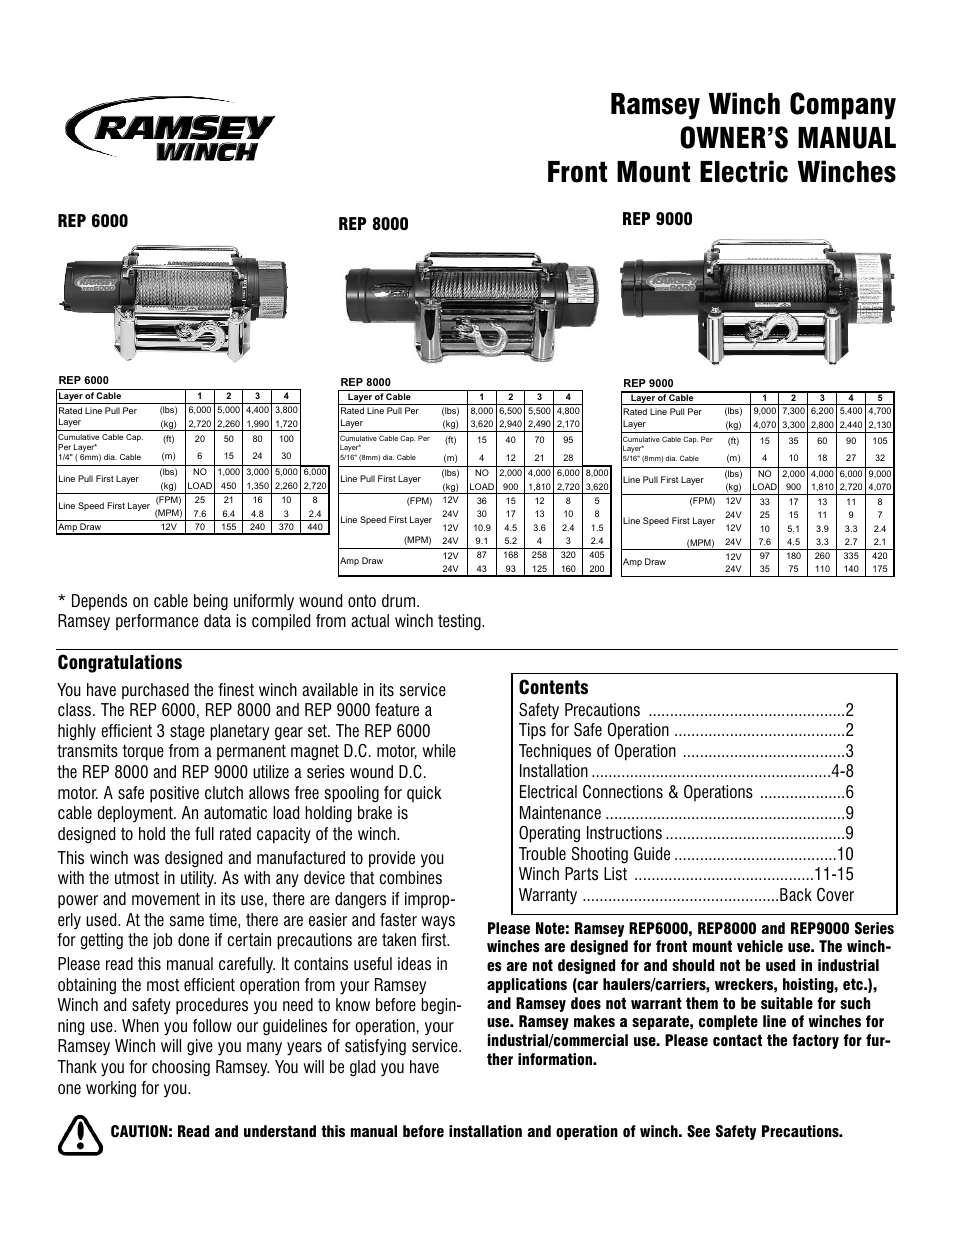 ramsey winch rep 6000_8000_9000 current page1?resize=665%2C861 ramsey winch solenoid wiring diagram double 4 wire solenoid 4 wheeler winch wiring diagram at mifinder.co